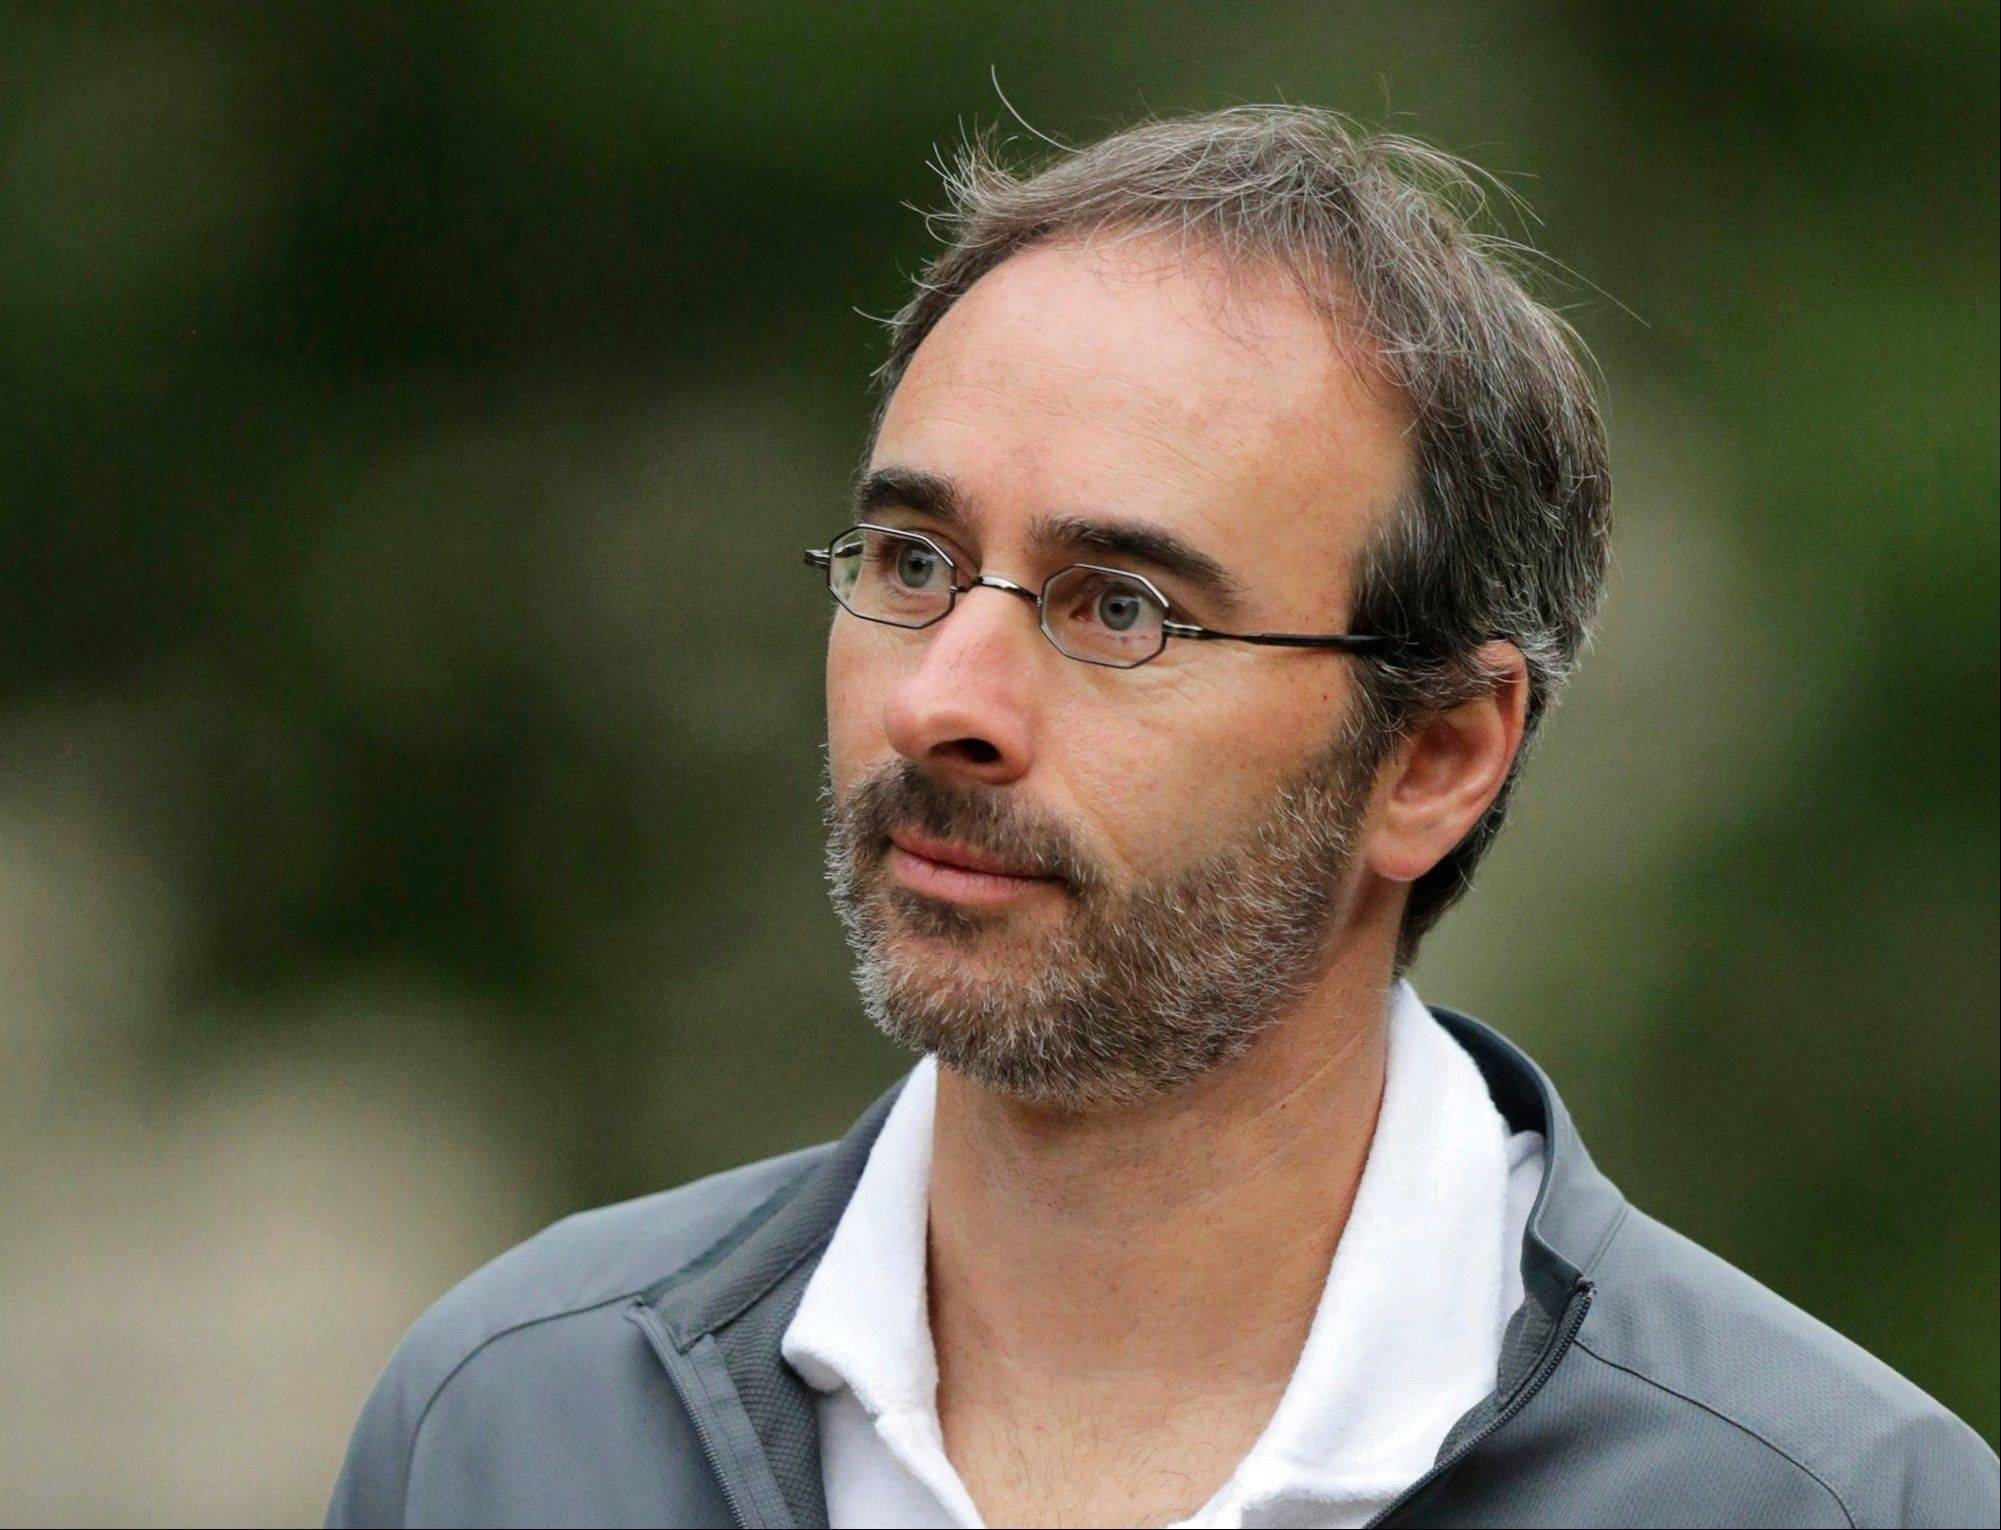 Chicago-based Groupon named co-founder Eric Lefkofsky as CEO